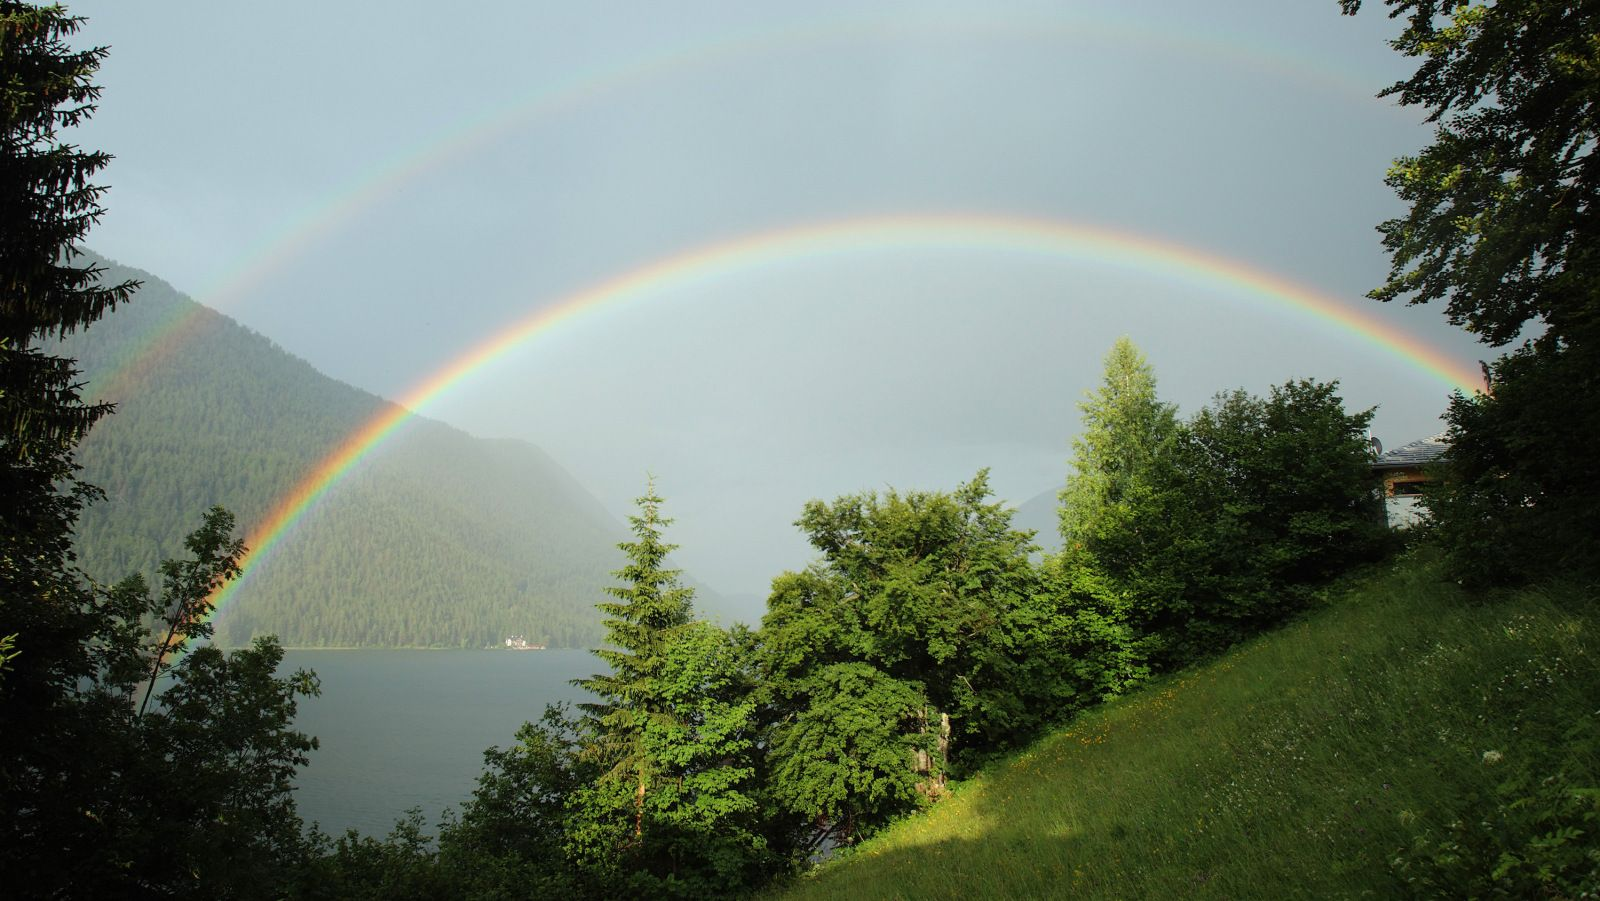 A double rainbow appears above Lake Weissensee in Naggl in Austria's southern Carinthia province July 10, 2013. REUTERS/Heinz-Peter Bader  (AUSTRIA - Tags: TRAVEL ENVIRONMENT SOCIETY)  - RTX11J42